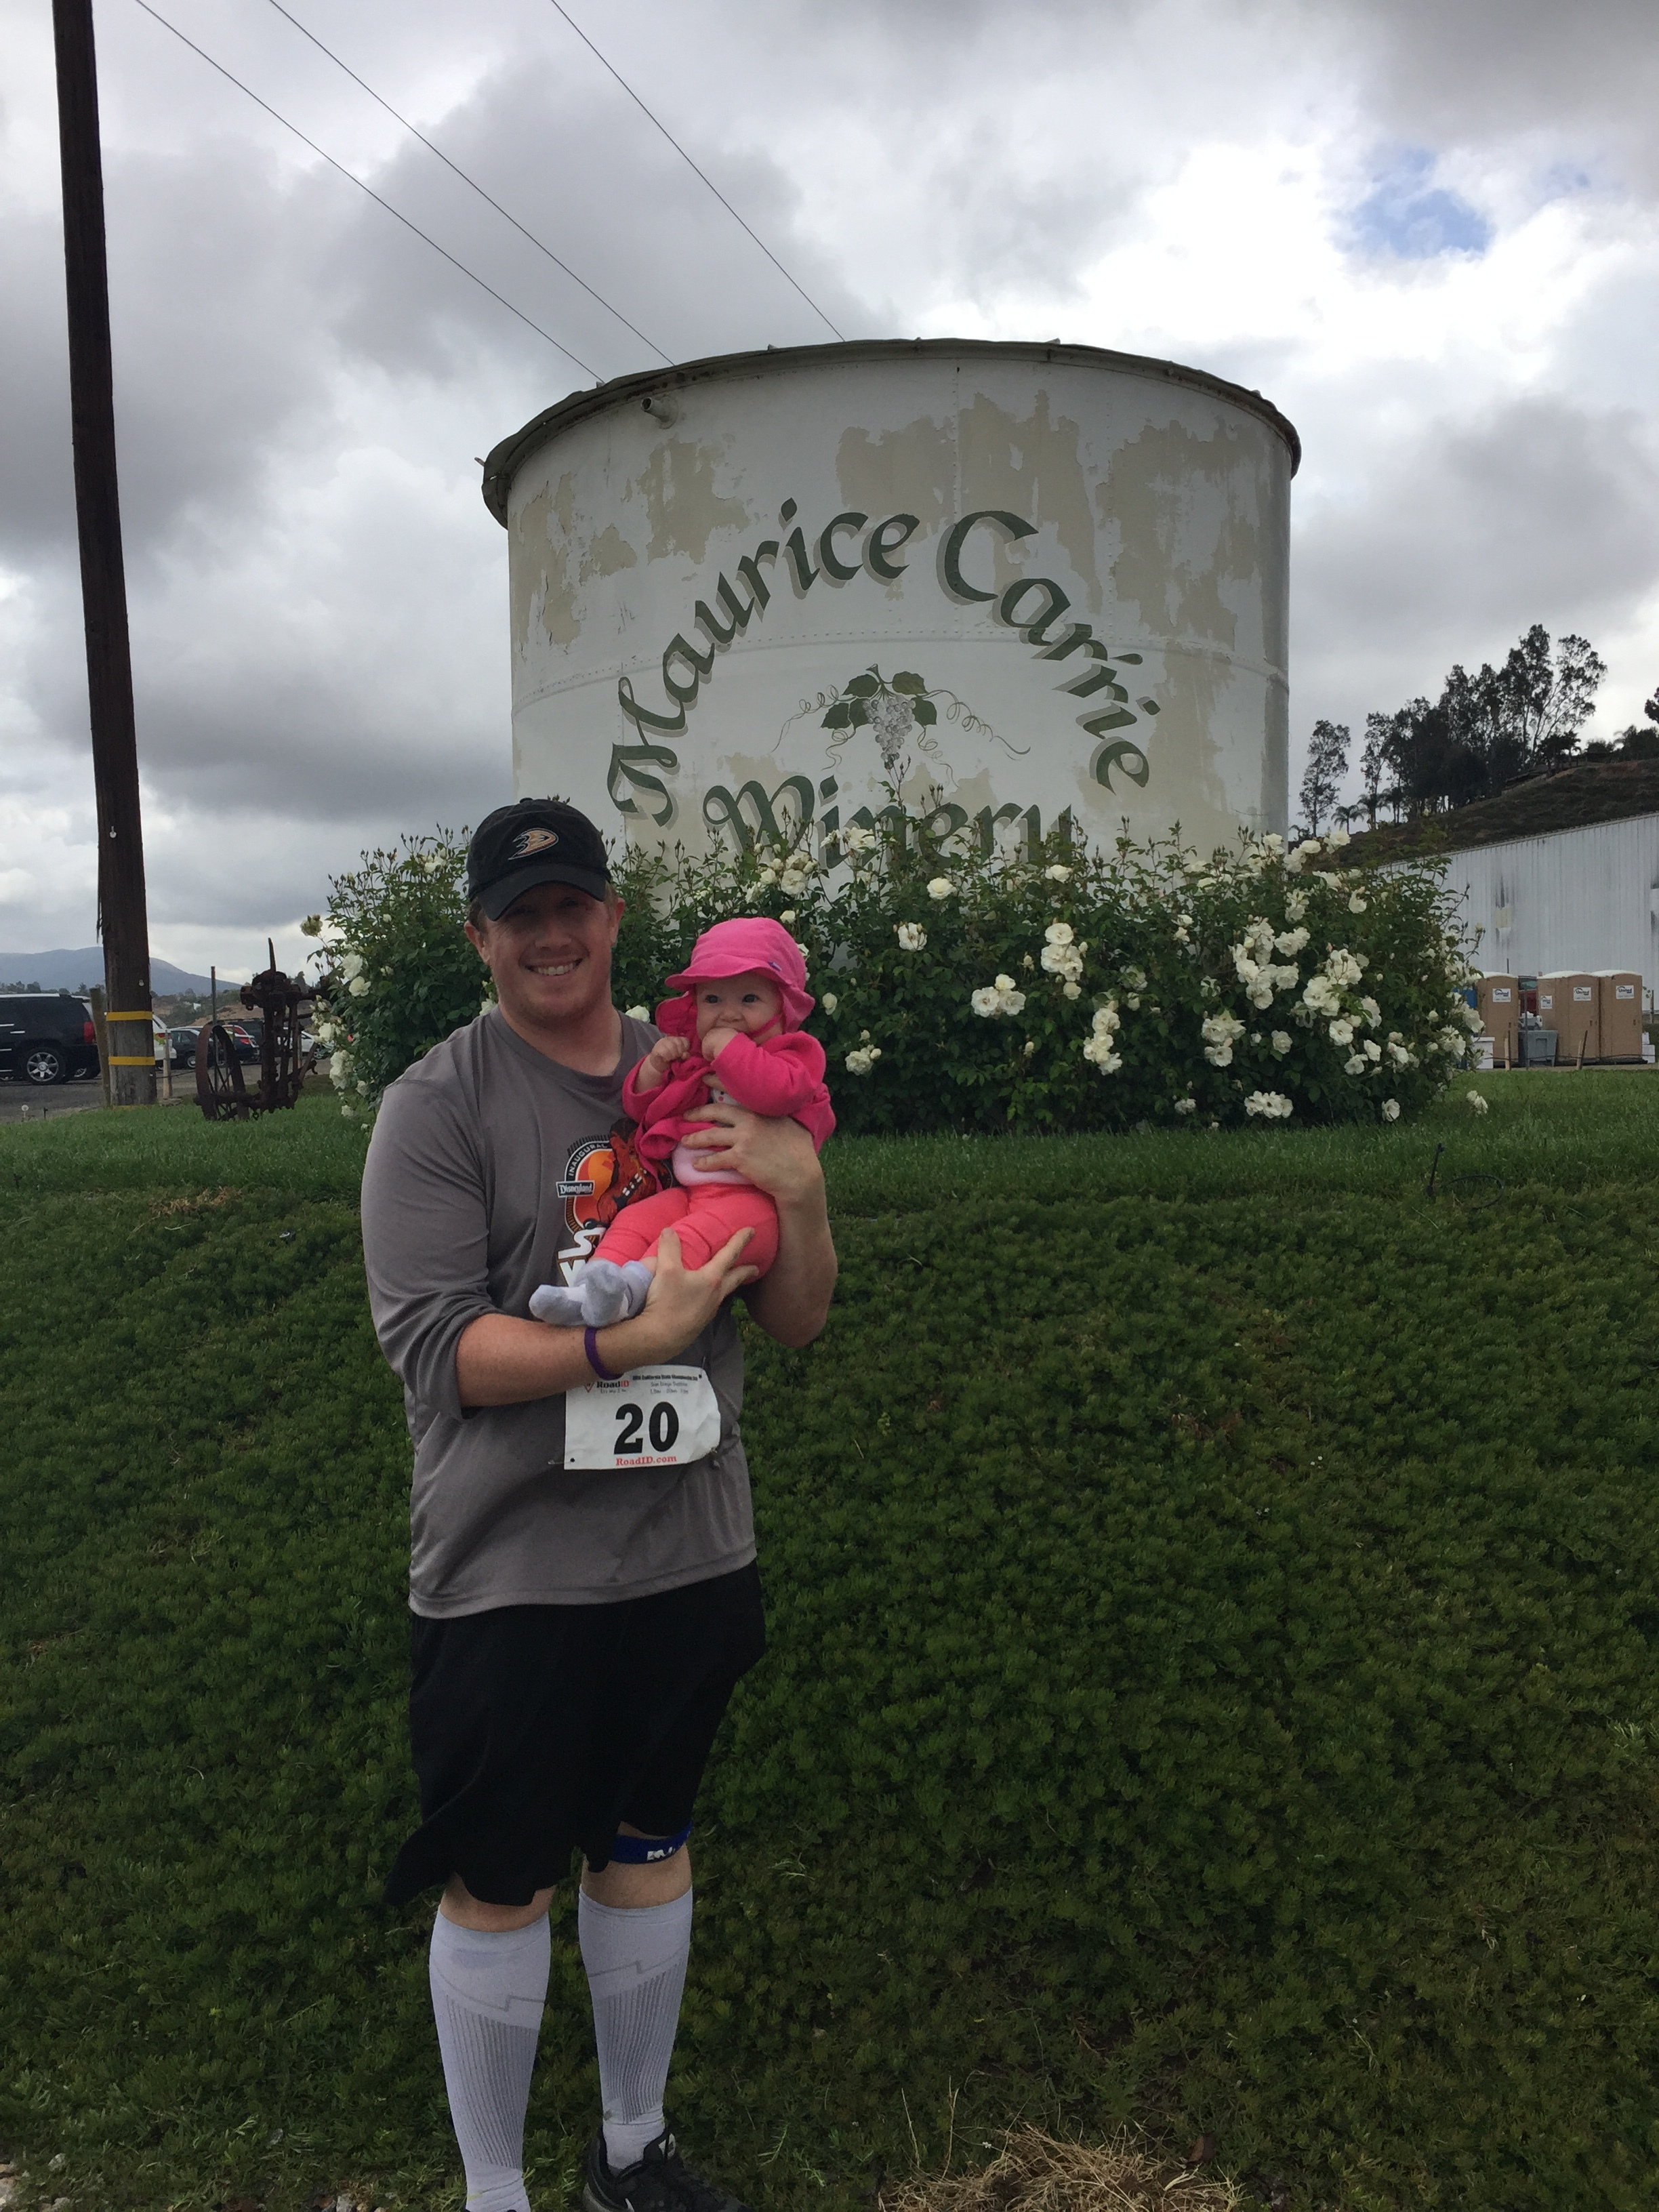 Jon and Rose, after the Race Through the Vineyard 10k